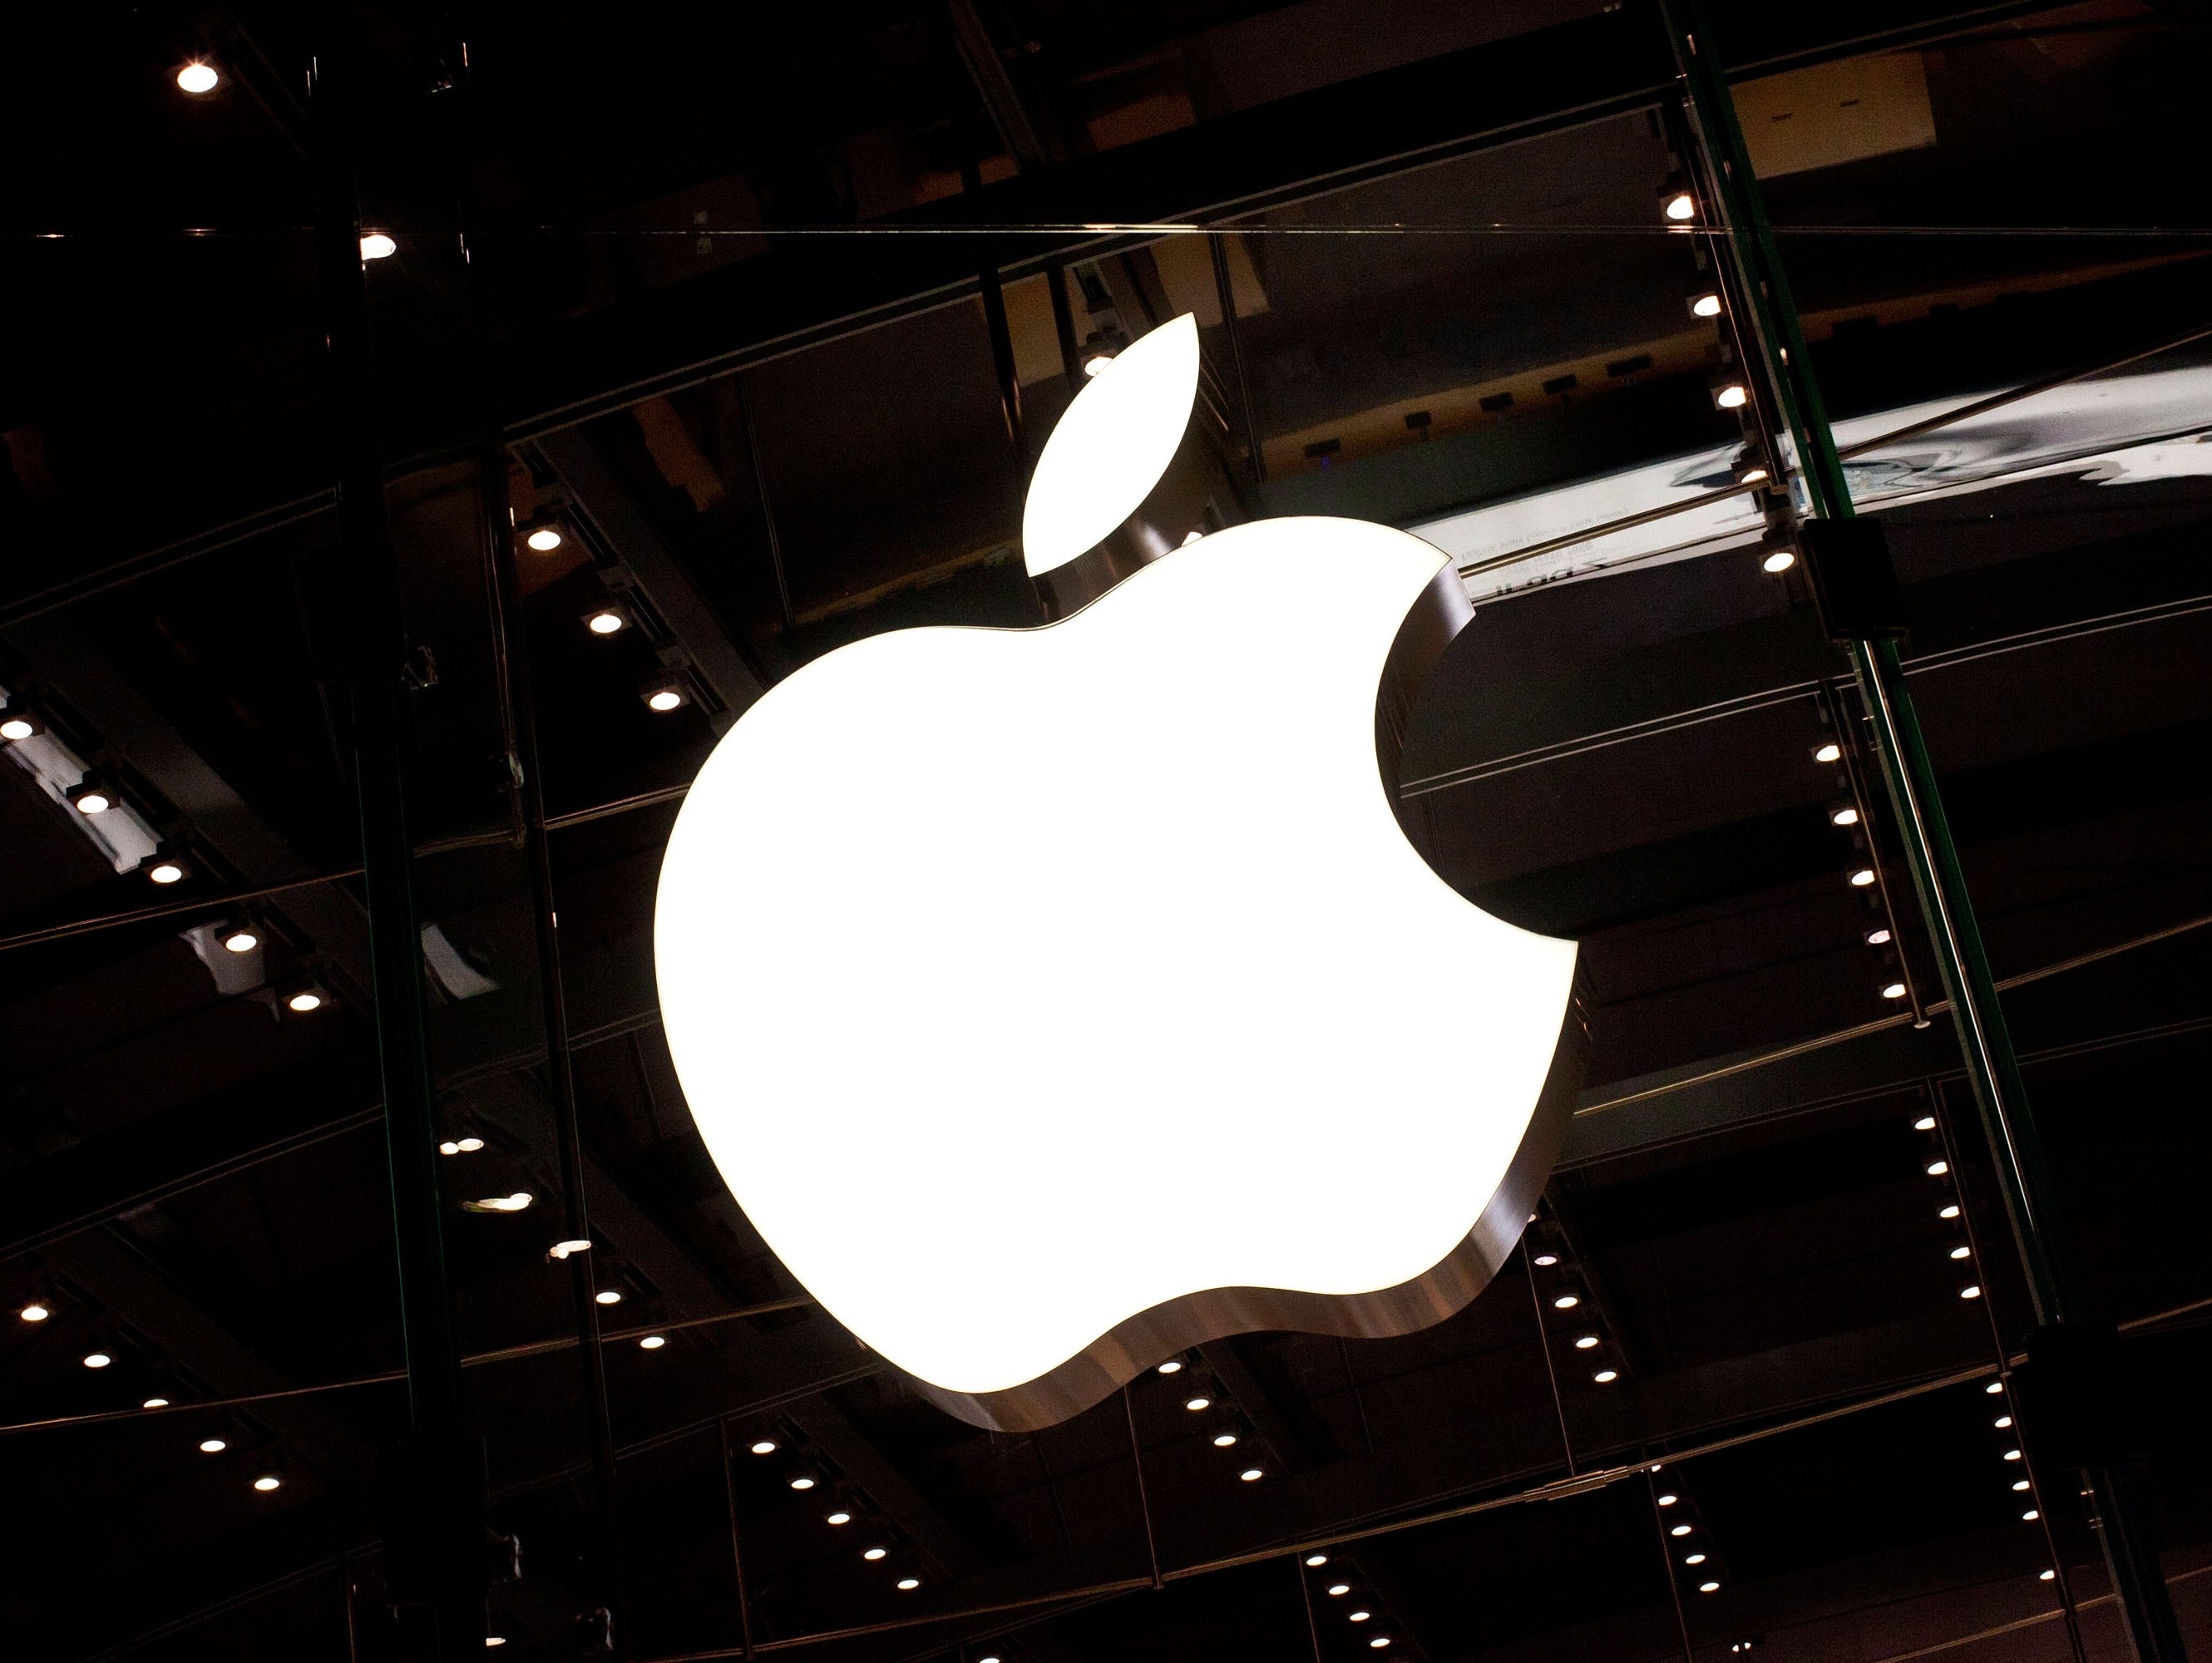 The Apple logo is seen hanging inside the Apple store on West 66th Street in New York City.